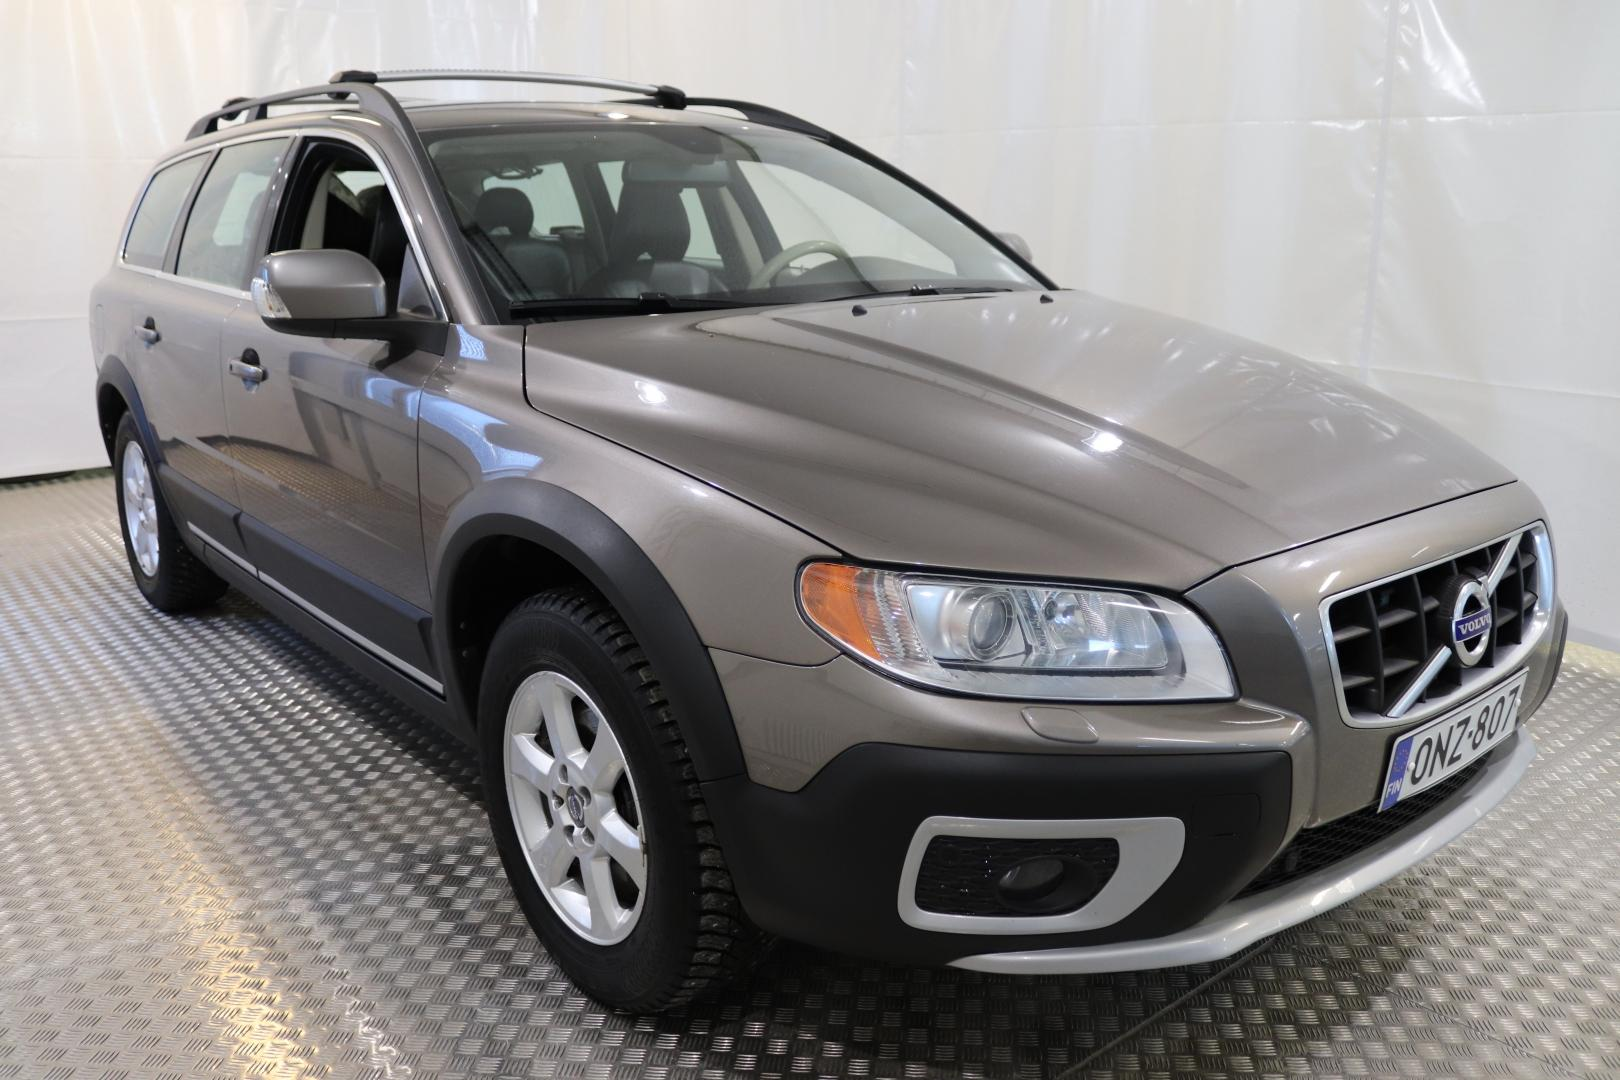 Volvo XC70, 2.4D Momentum A